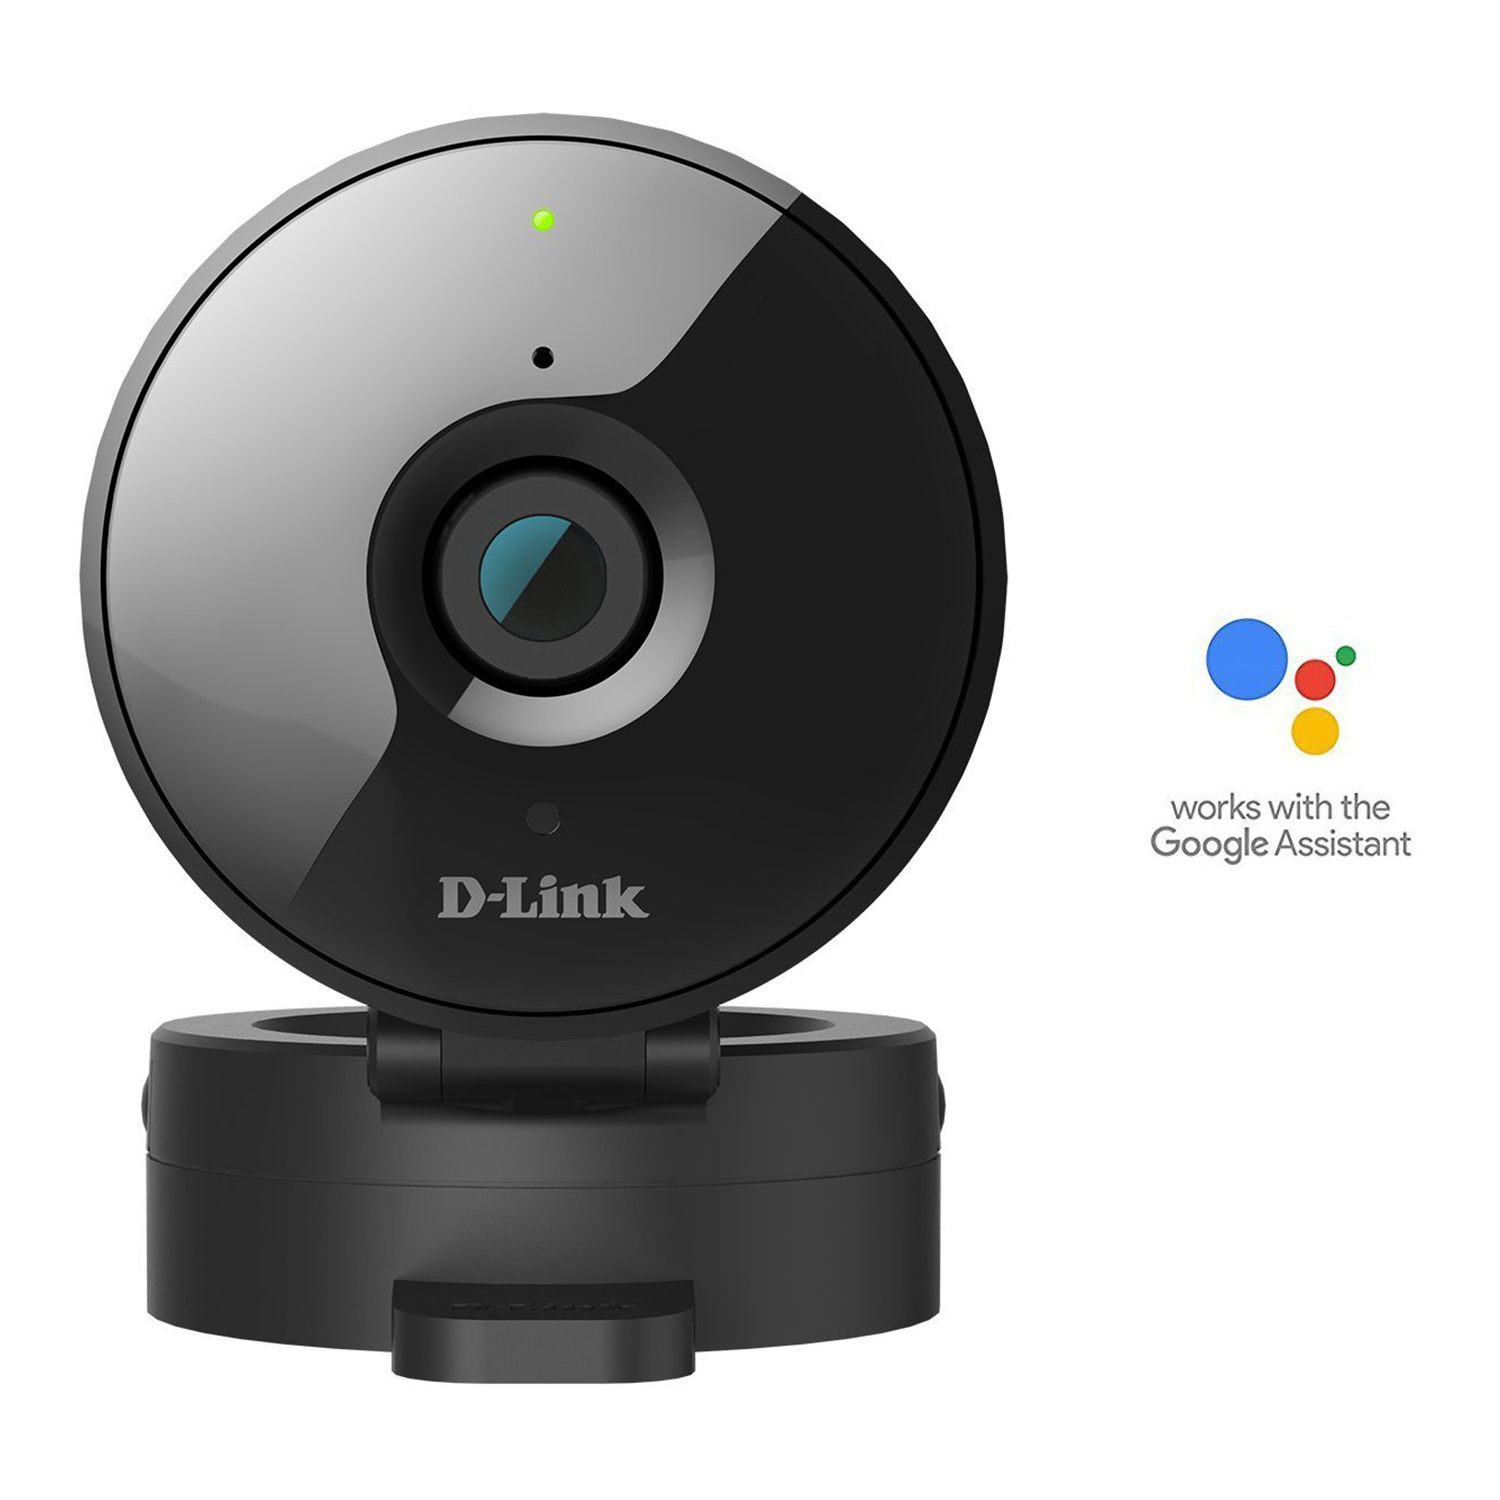 Refurbished D-Link HD WiFi 720P Home Security Camera with Night Vision - DCS-936L, Works with Google Assistant